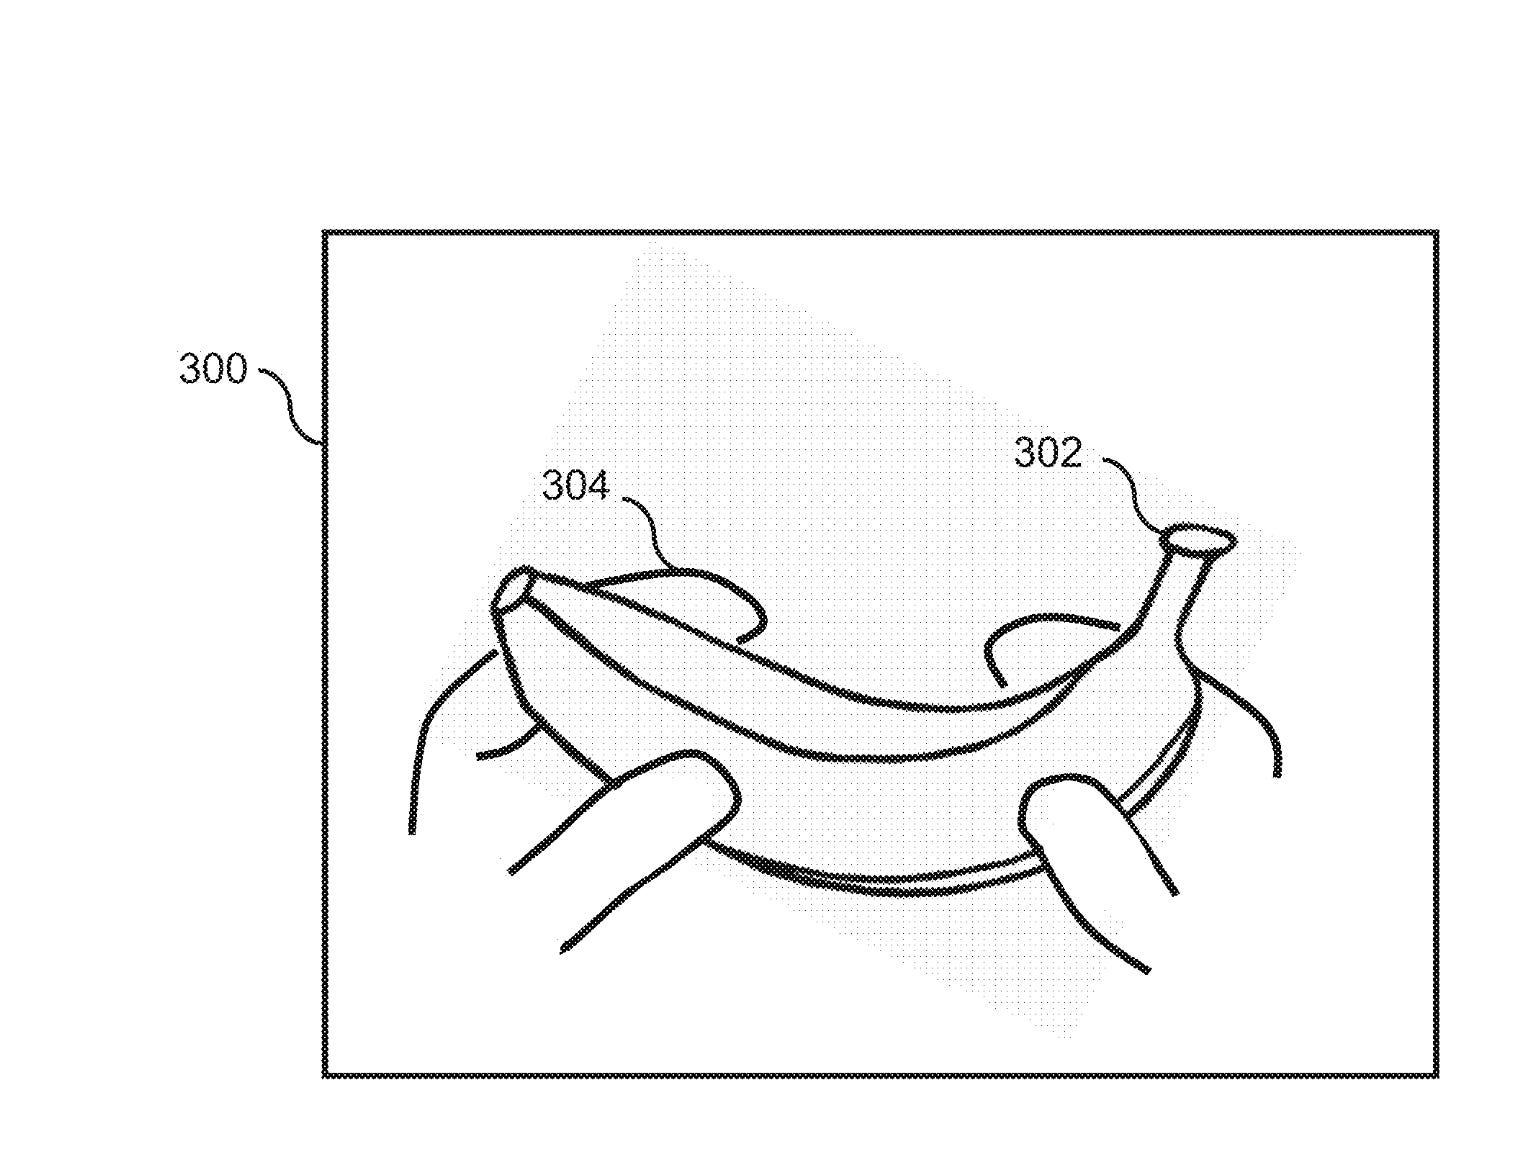 Sony has filed a patent for a system that could turn bananas and other household items into PlayStation contro - Business Insider India